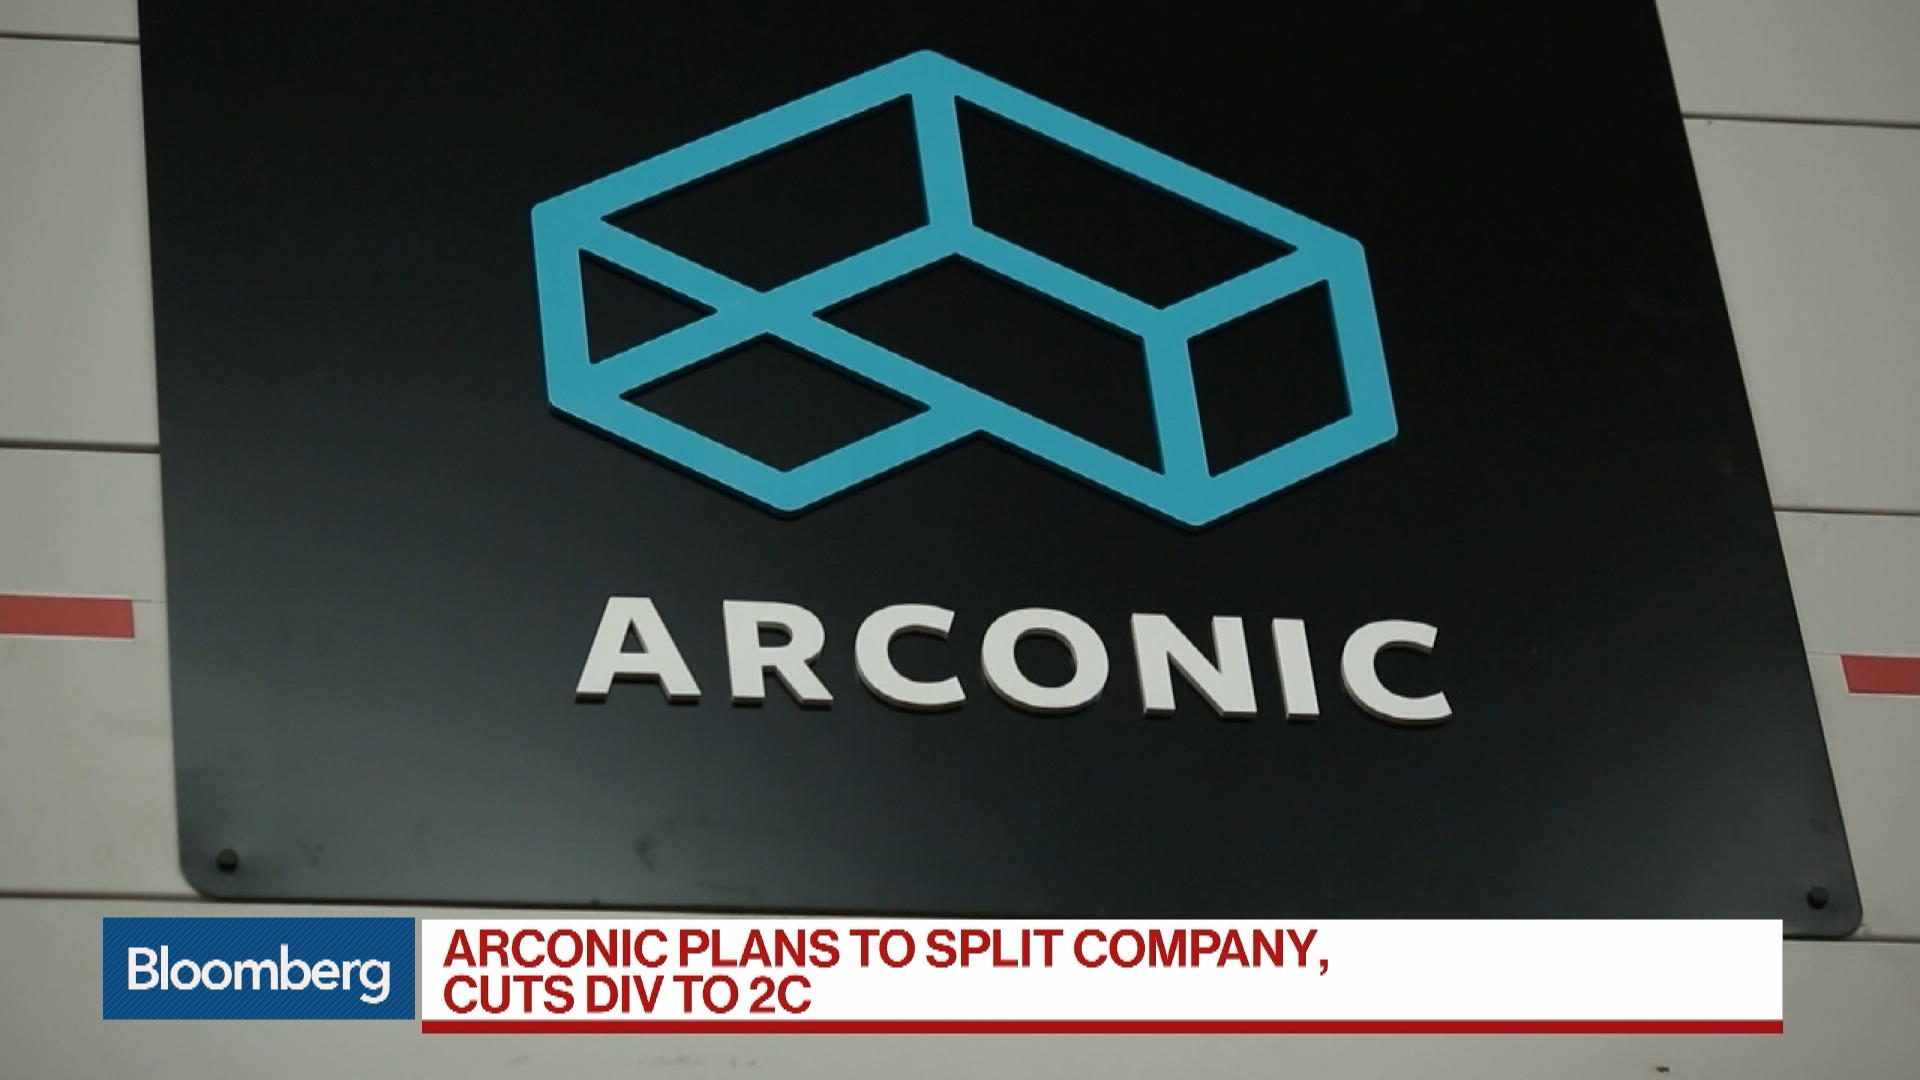 Arconic to Break Up, Cut Dividend as New CEO Reveals Revamp